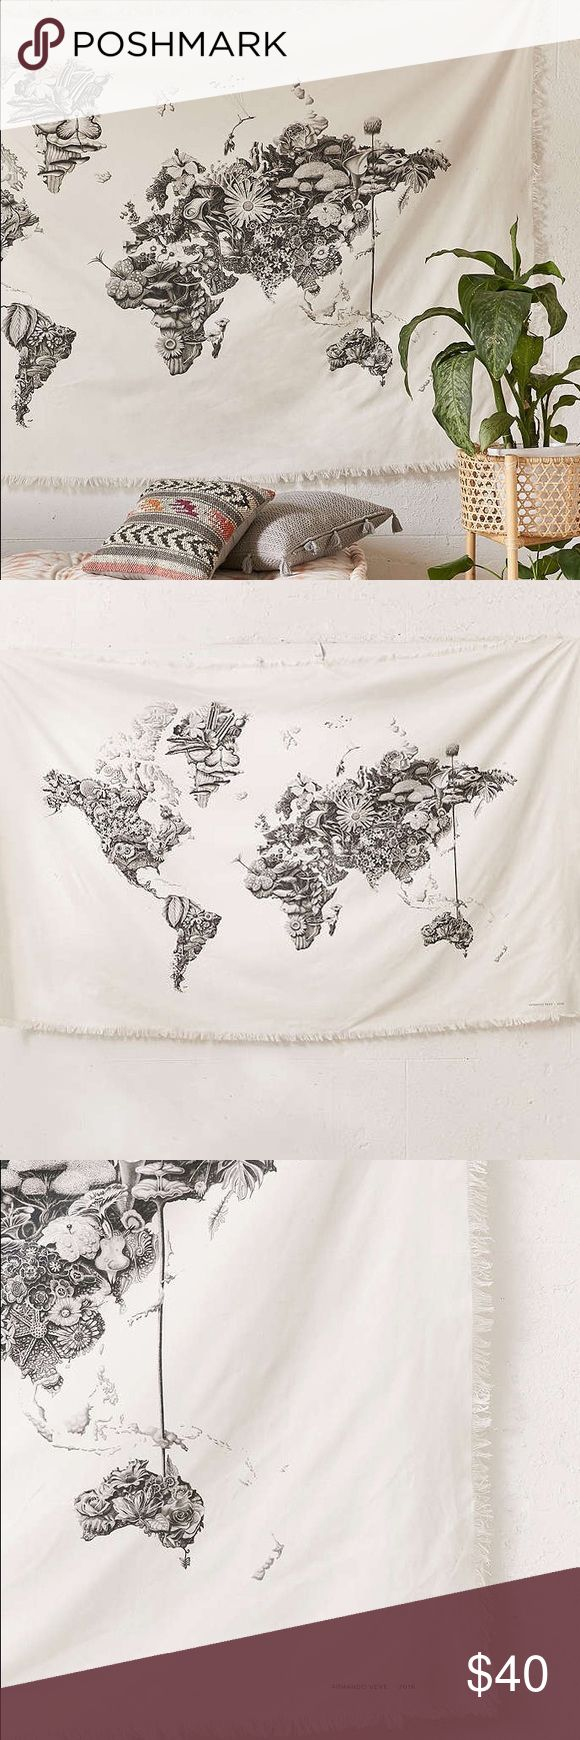 Armando Veve Map Wall Tapestry Online from urban outfitters, still in original packaging - hasn't been removed from the box (decided it doesn't fit my room) Urban Outfitters Other